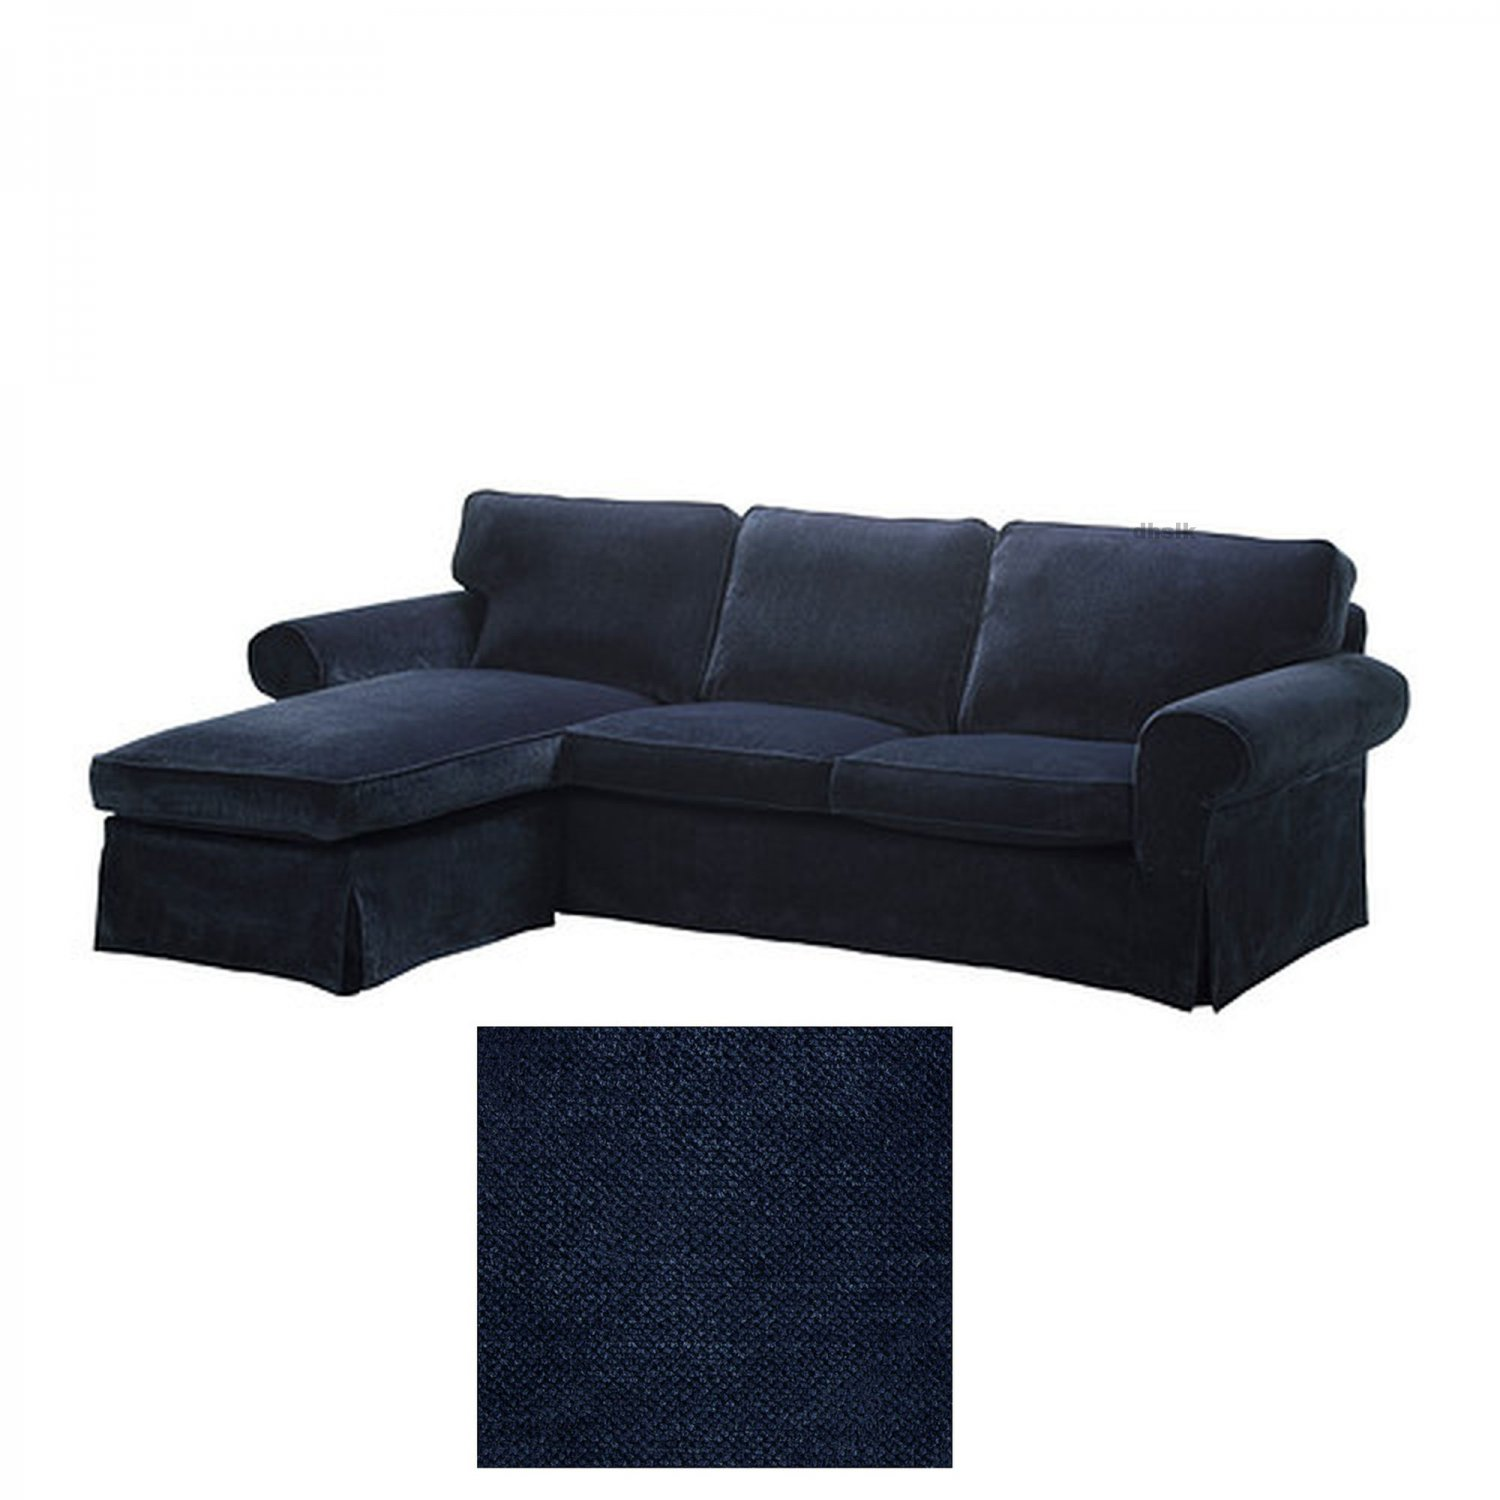 Ikea ektorp 2 seat loveseat sofa with chaise cover slipcover vellinge dark blue Loveseat slipcover